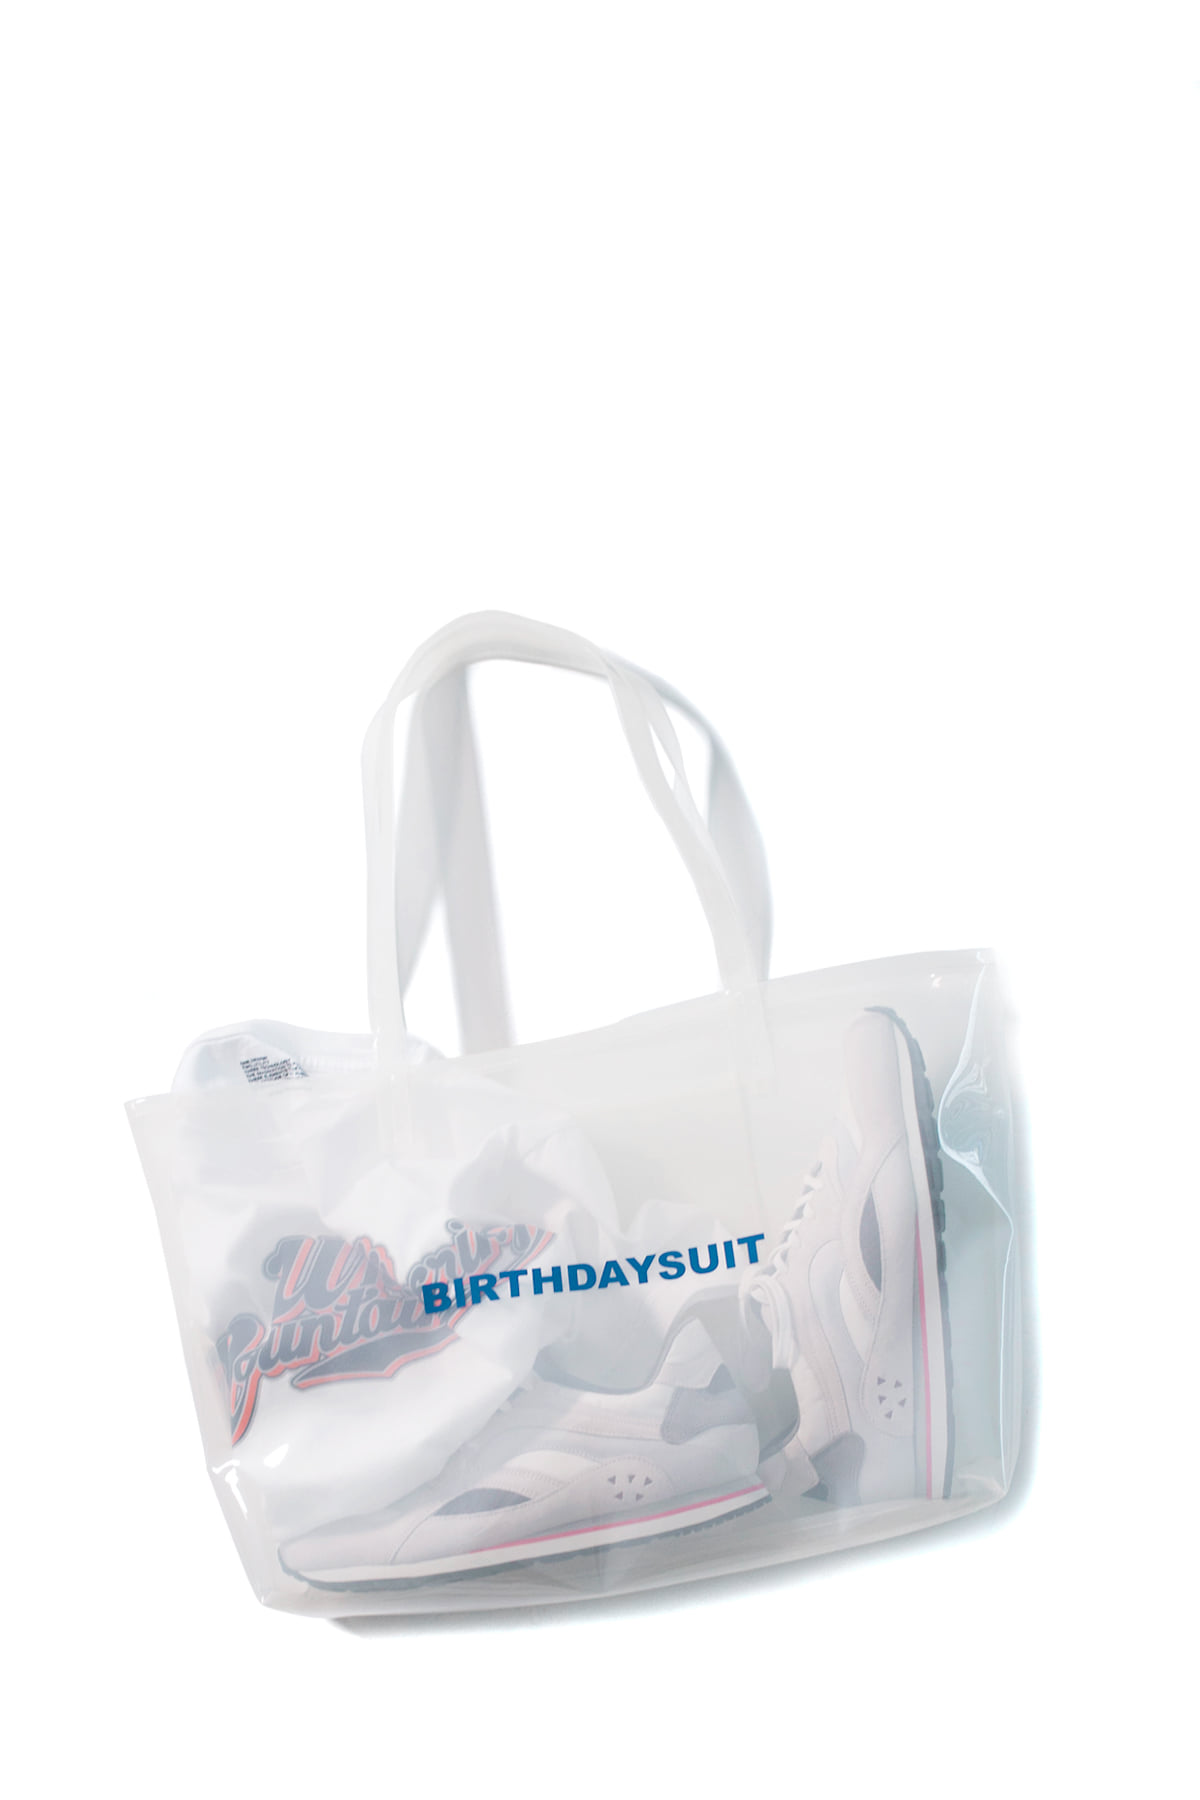 BIRTHDAYSUIT : LOGO PVC (White)